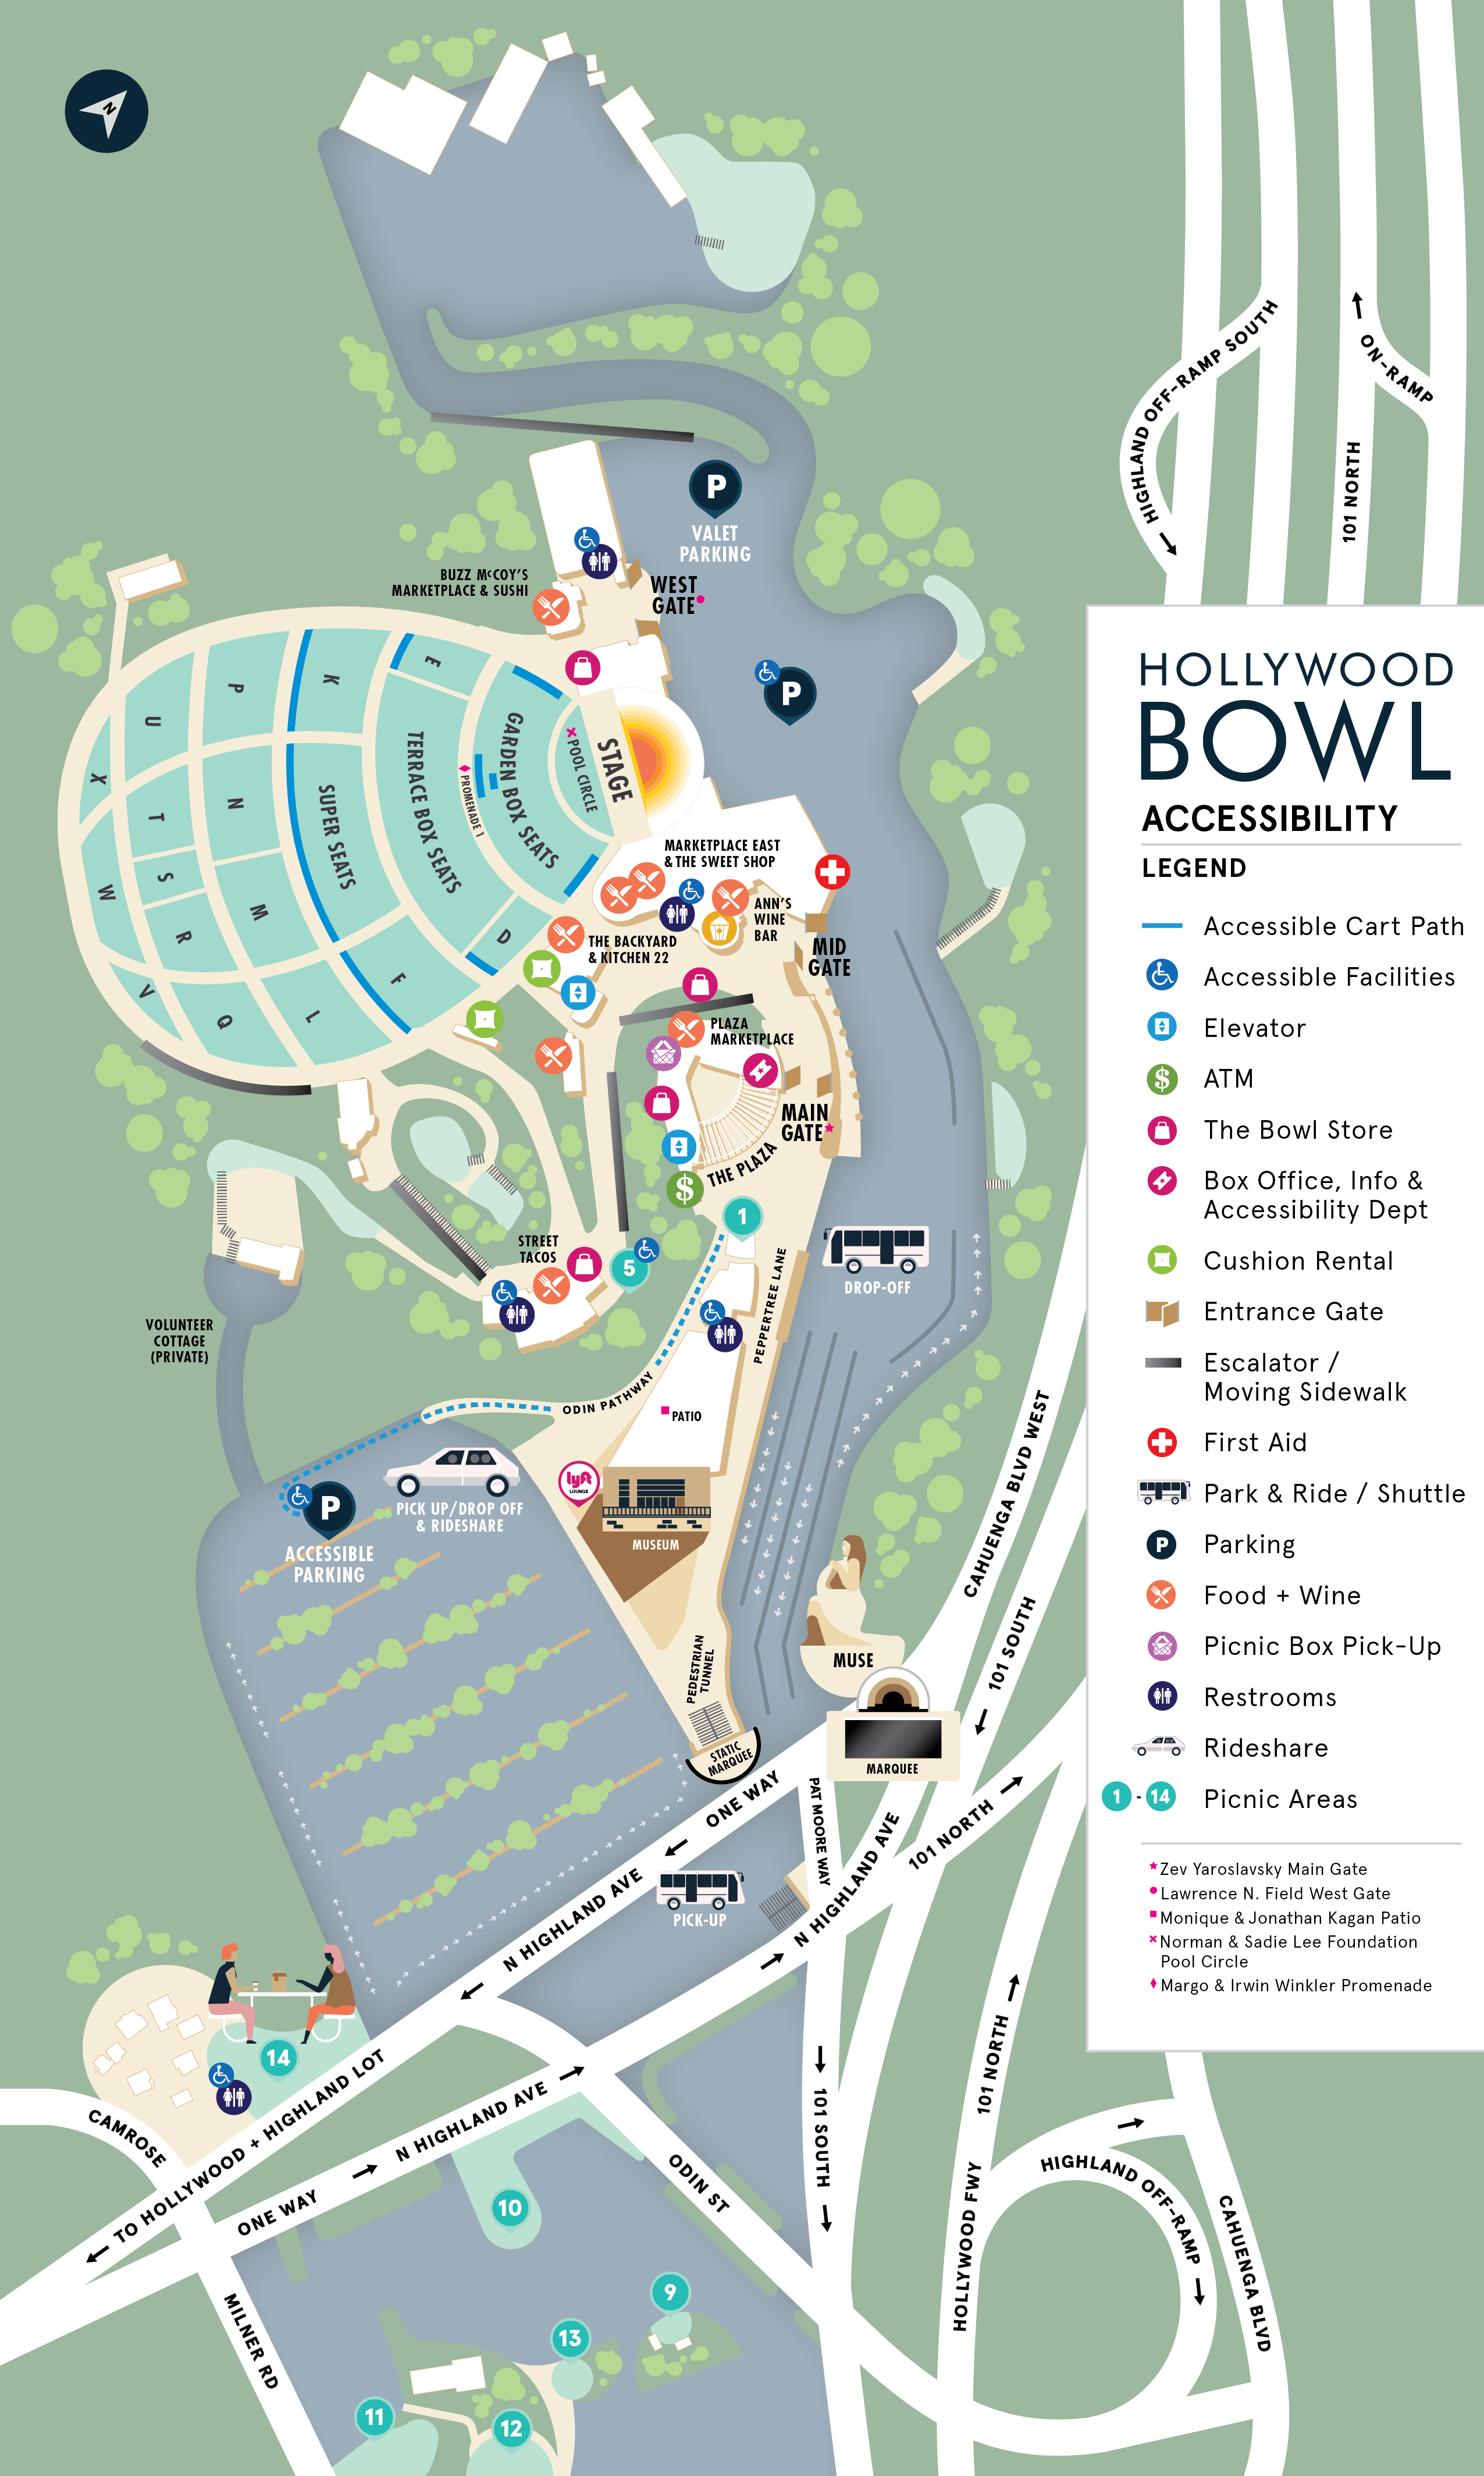 Bowl Accessibility Map Hollywood